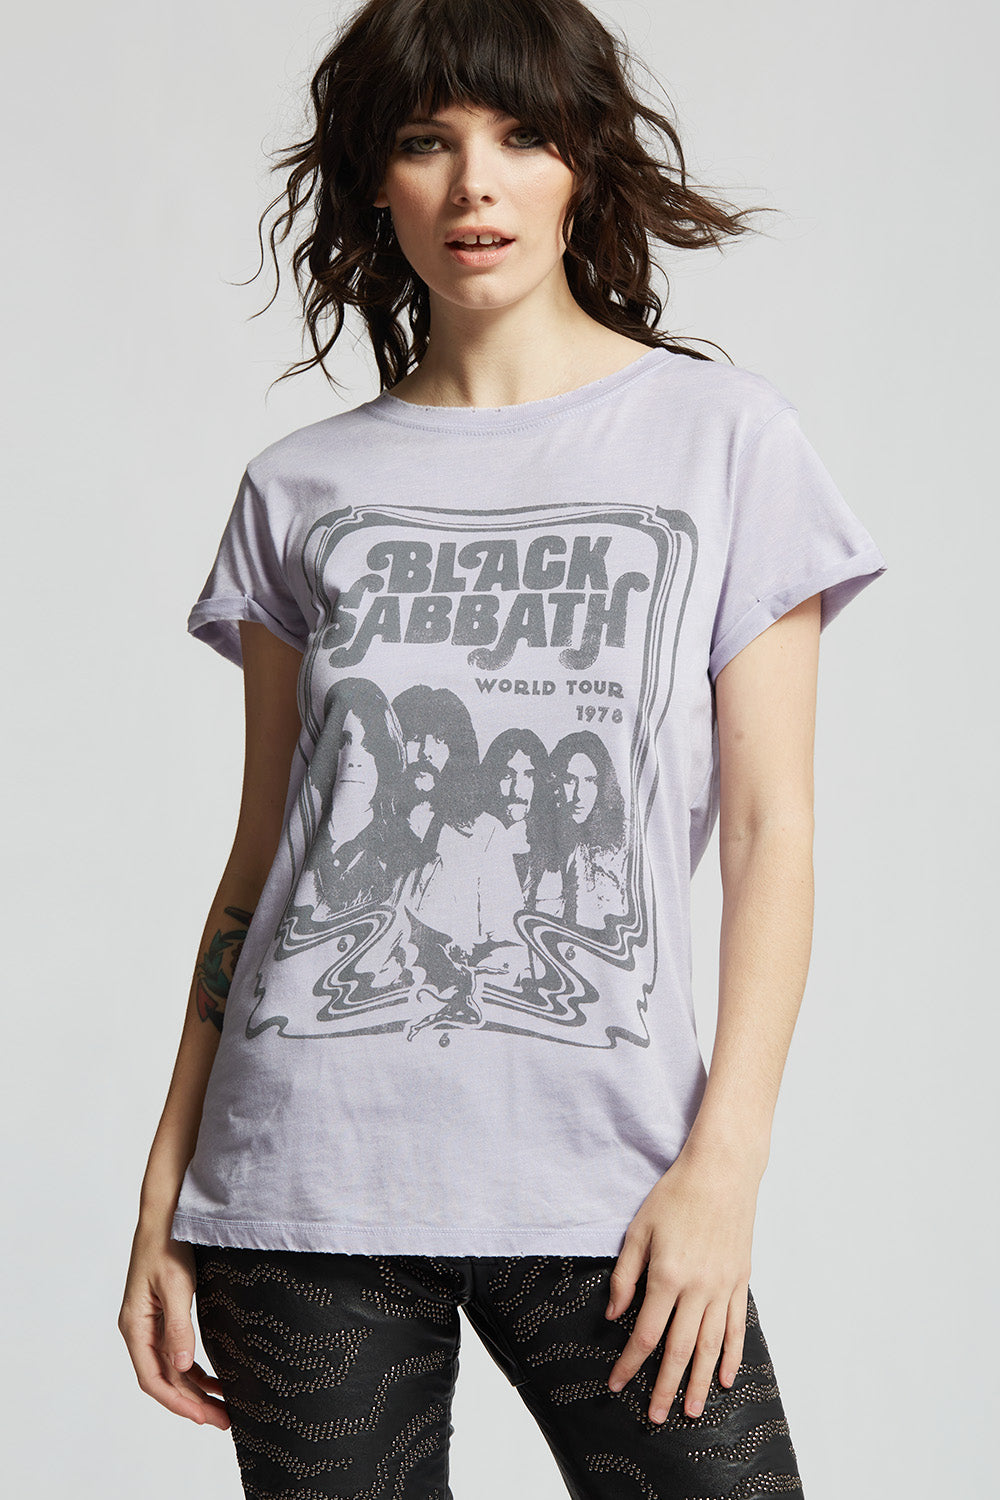 Black Sabbath World Tour '78 Tee